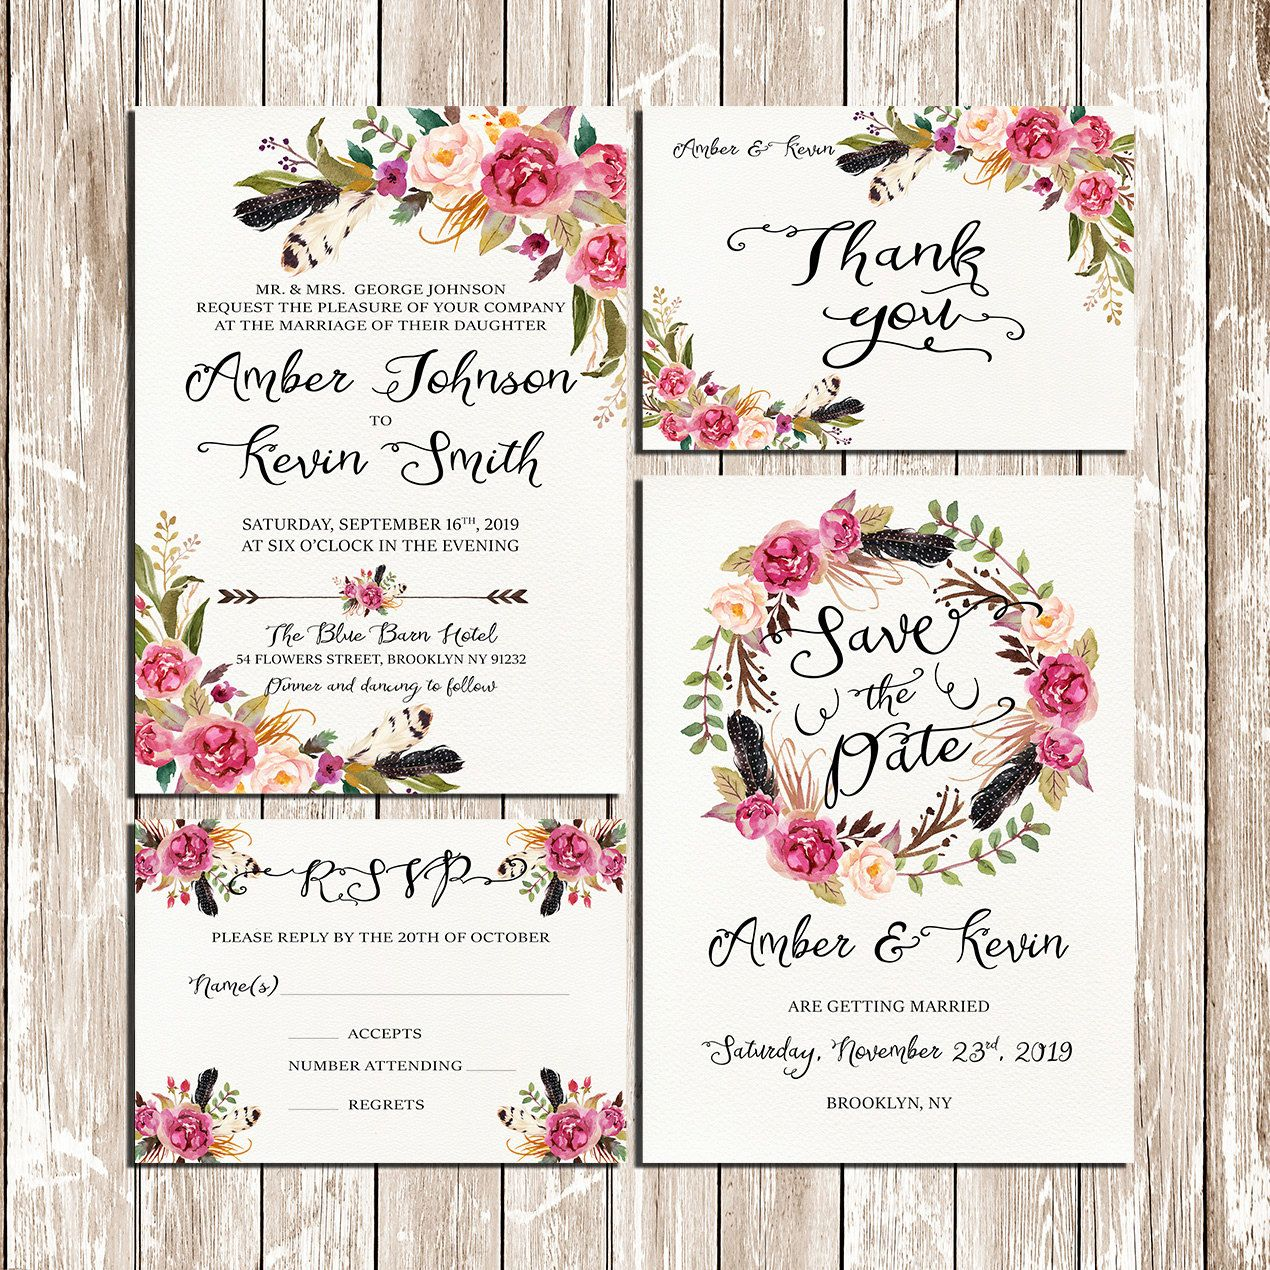 Flowers And Feathers Bohemian Floral Wreath Wedding Invitation Kit Pink  Floral Rustic Boho Watercolor Set/Suite Printable Digital Files